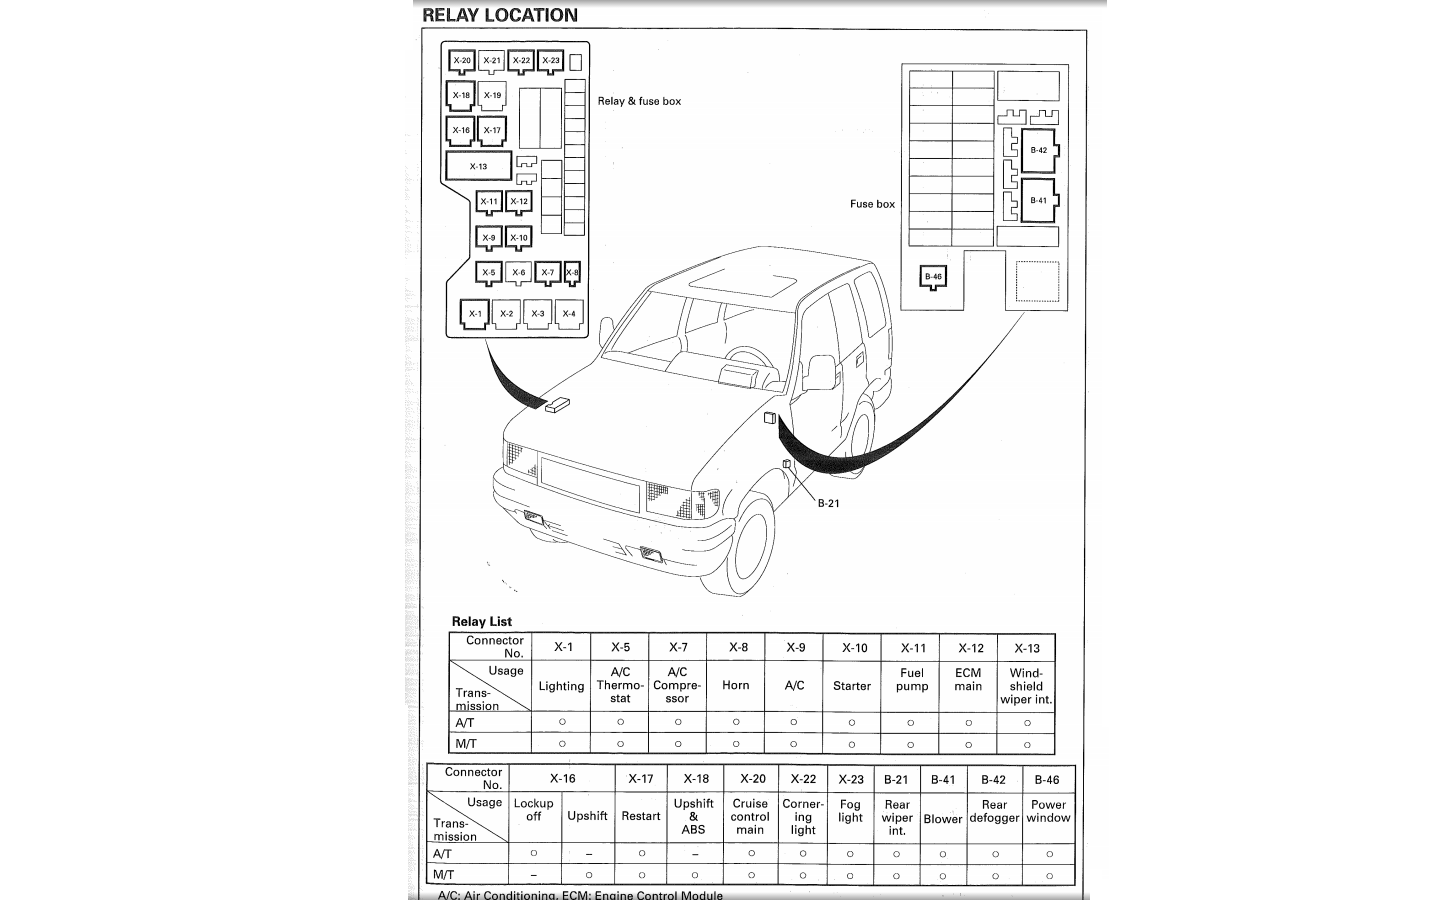 1994 Isuzu trooper 3 2 need diagram of the under hood fuse